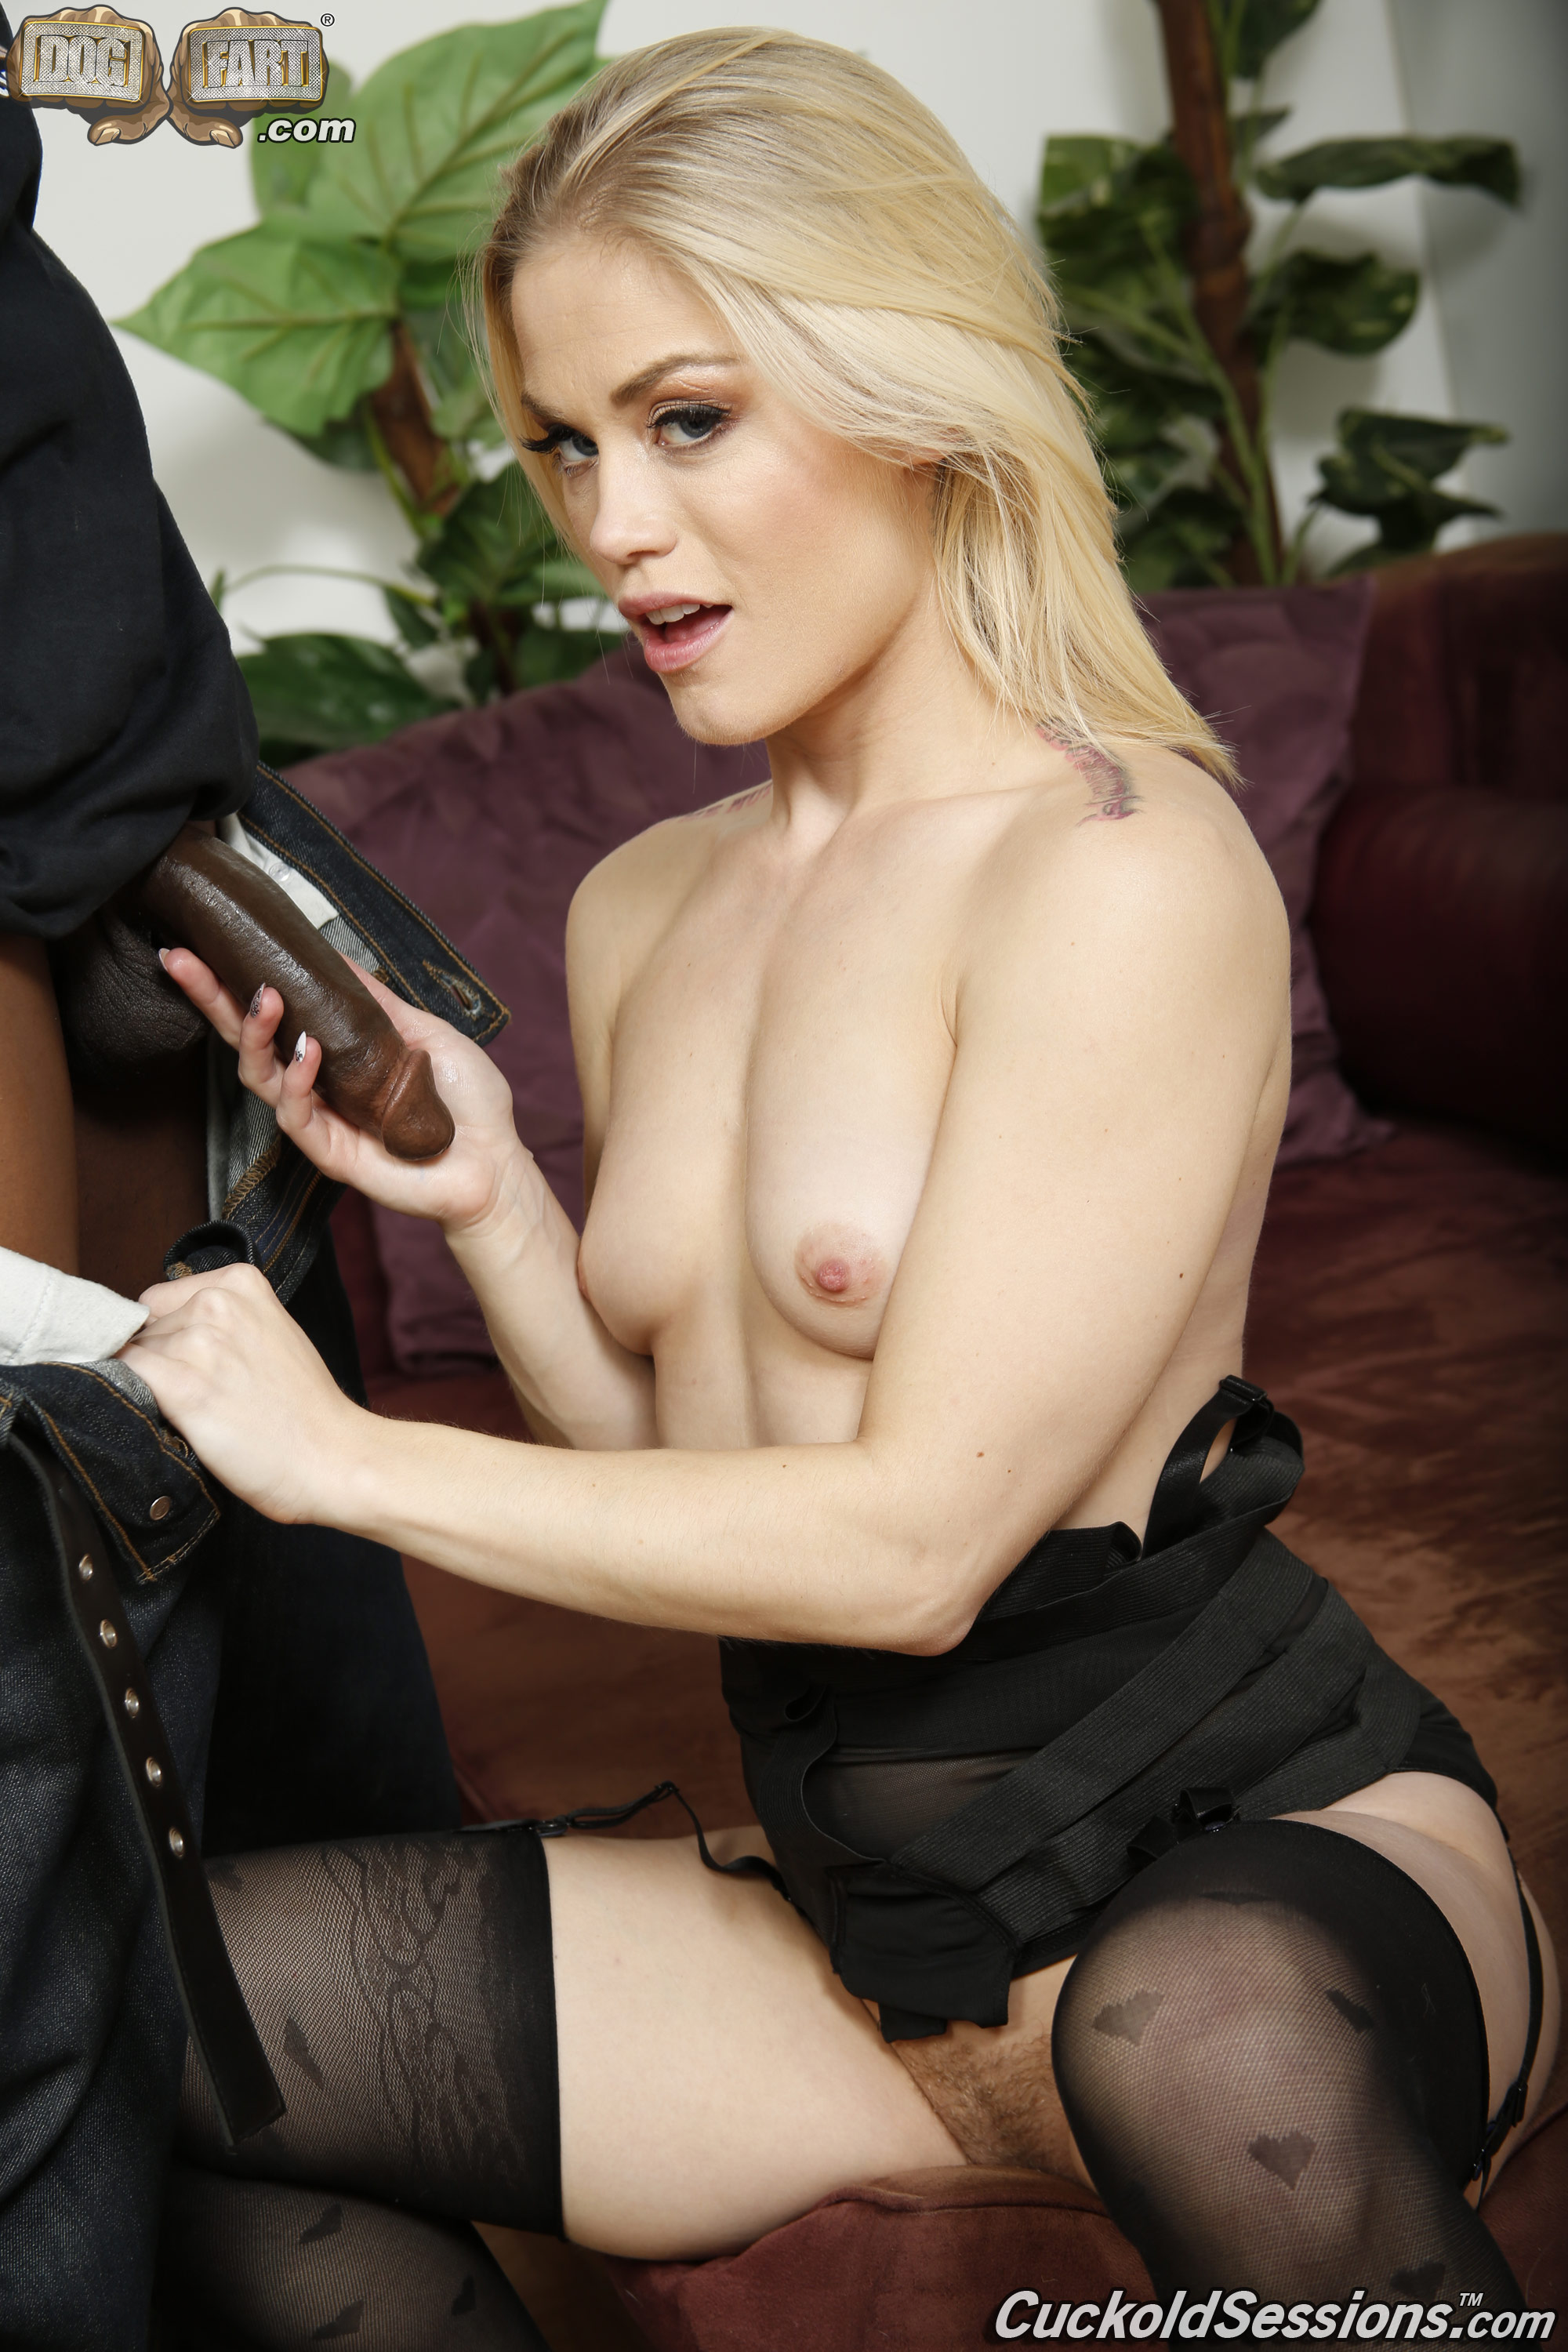 galleries CuckoldSessions content ash hollywood pic 08